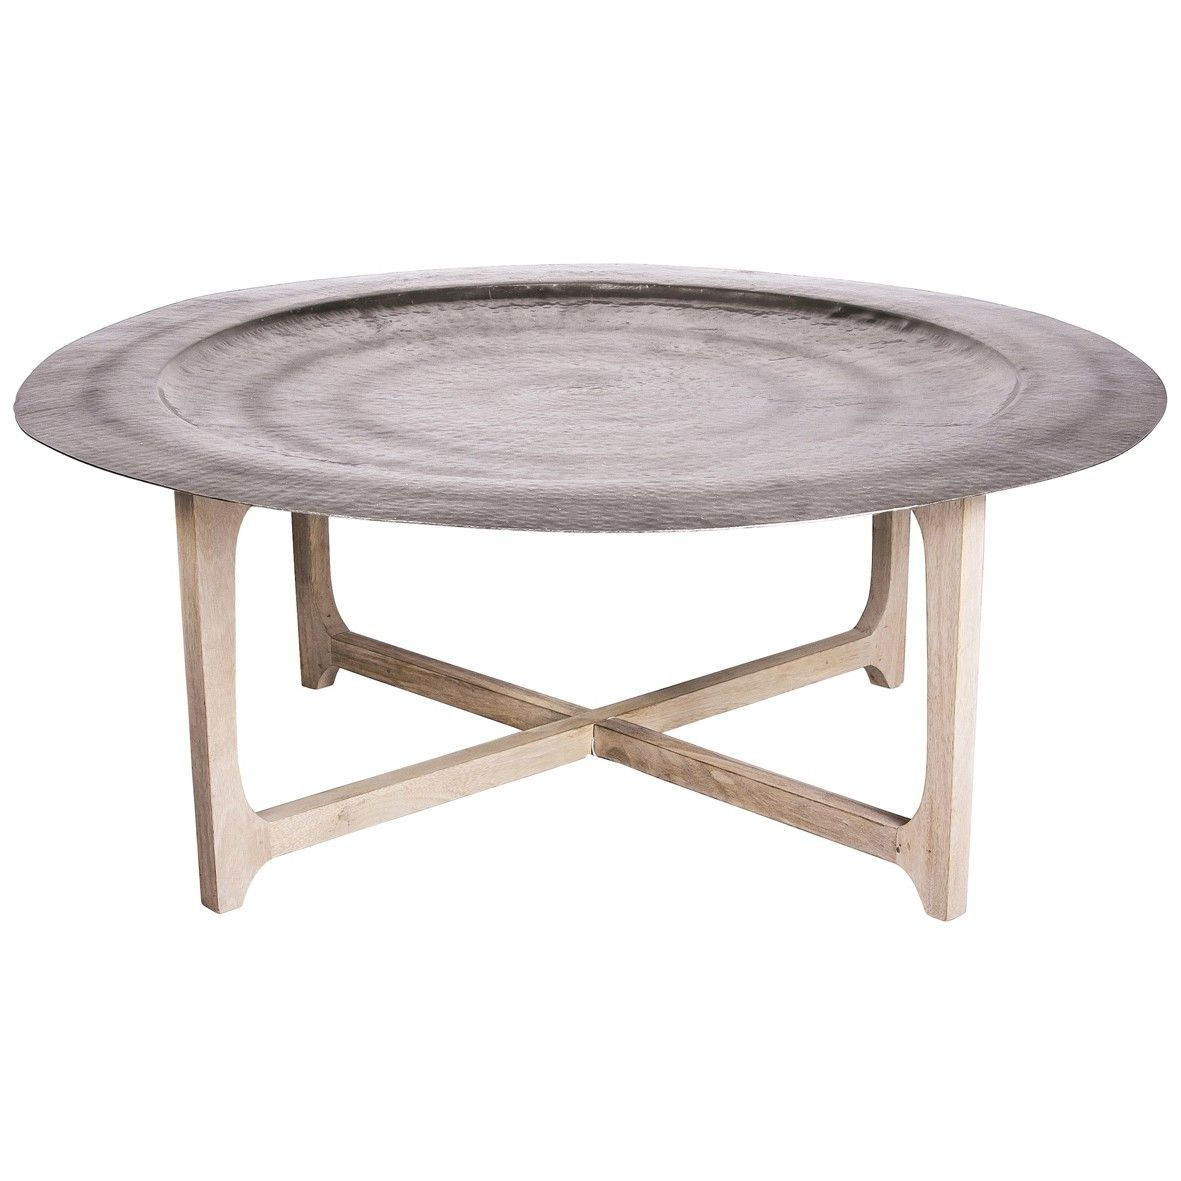 Evoke The Allure Of Morocco With The Laide Coffee Table. Featuring A Simple  Natural Wood